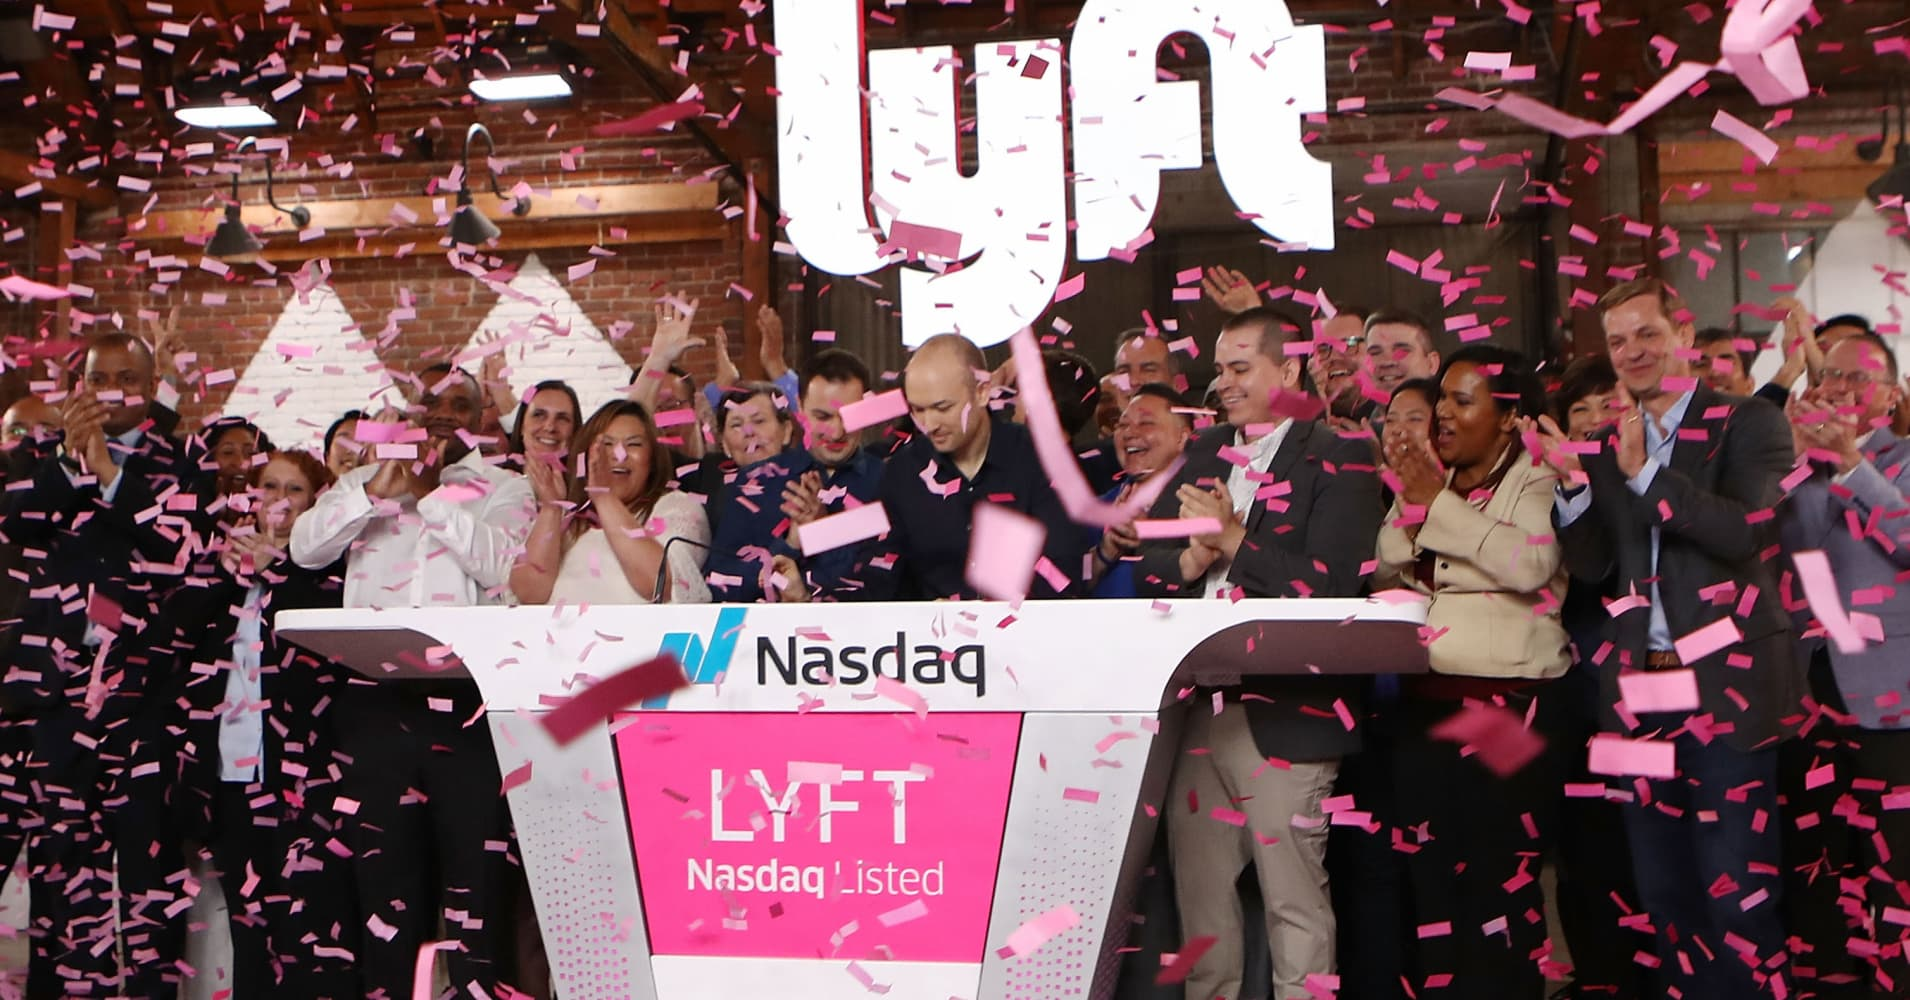 Lyft shares should only be worth $59 according to valuation guru